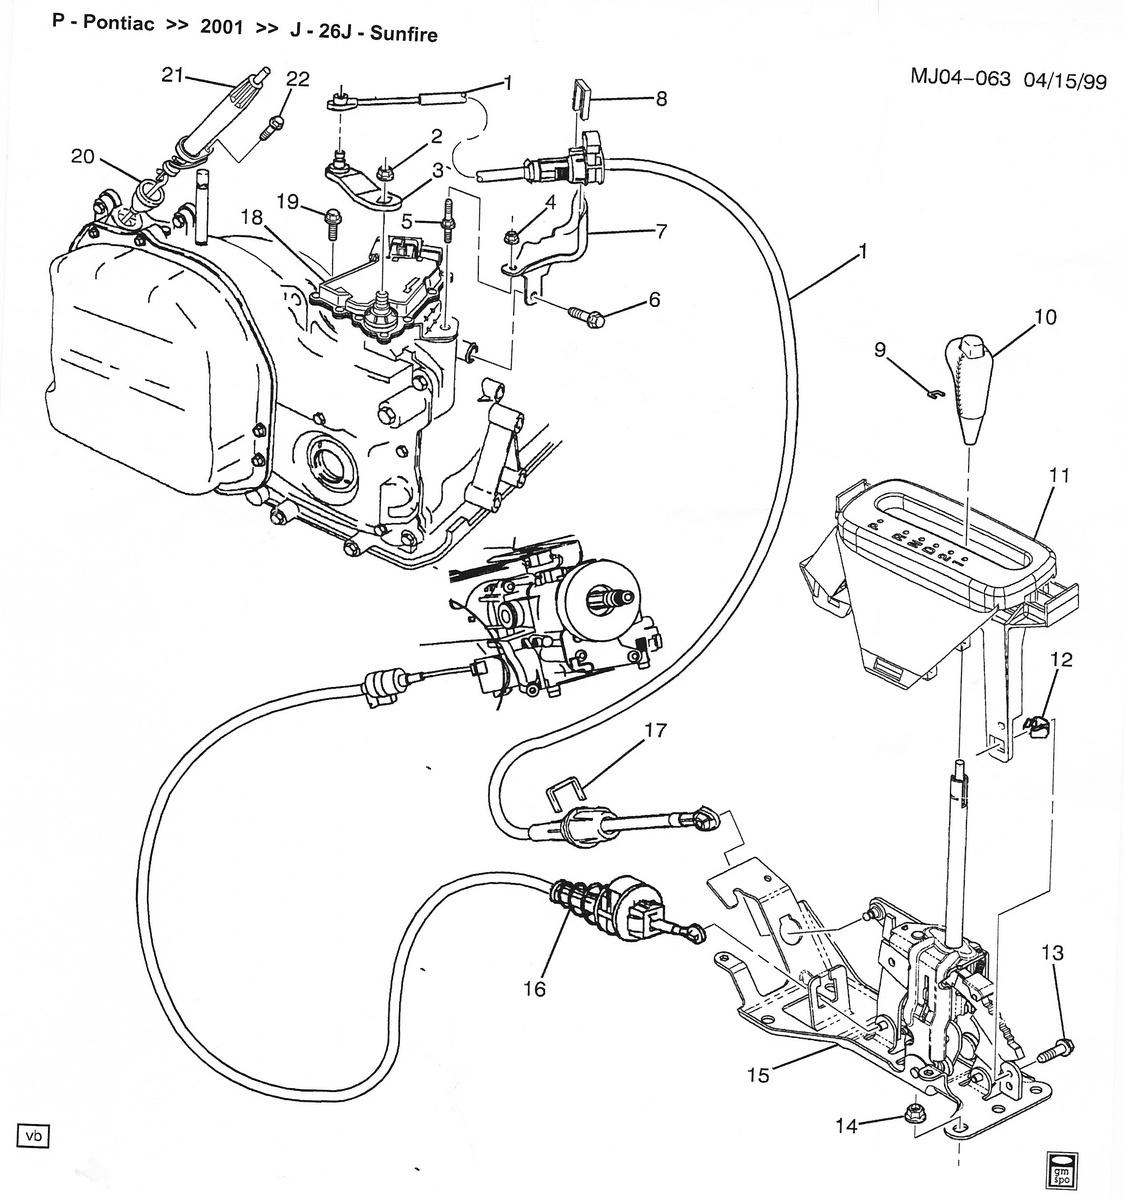 2004 Chevy Cavalier Door Part Diagrams